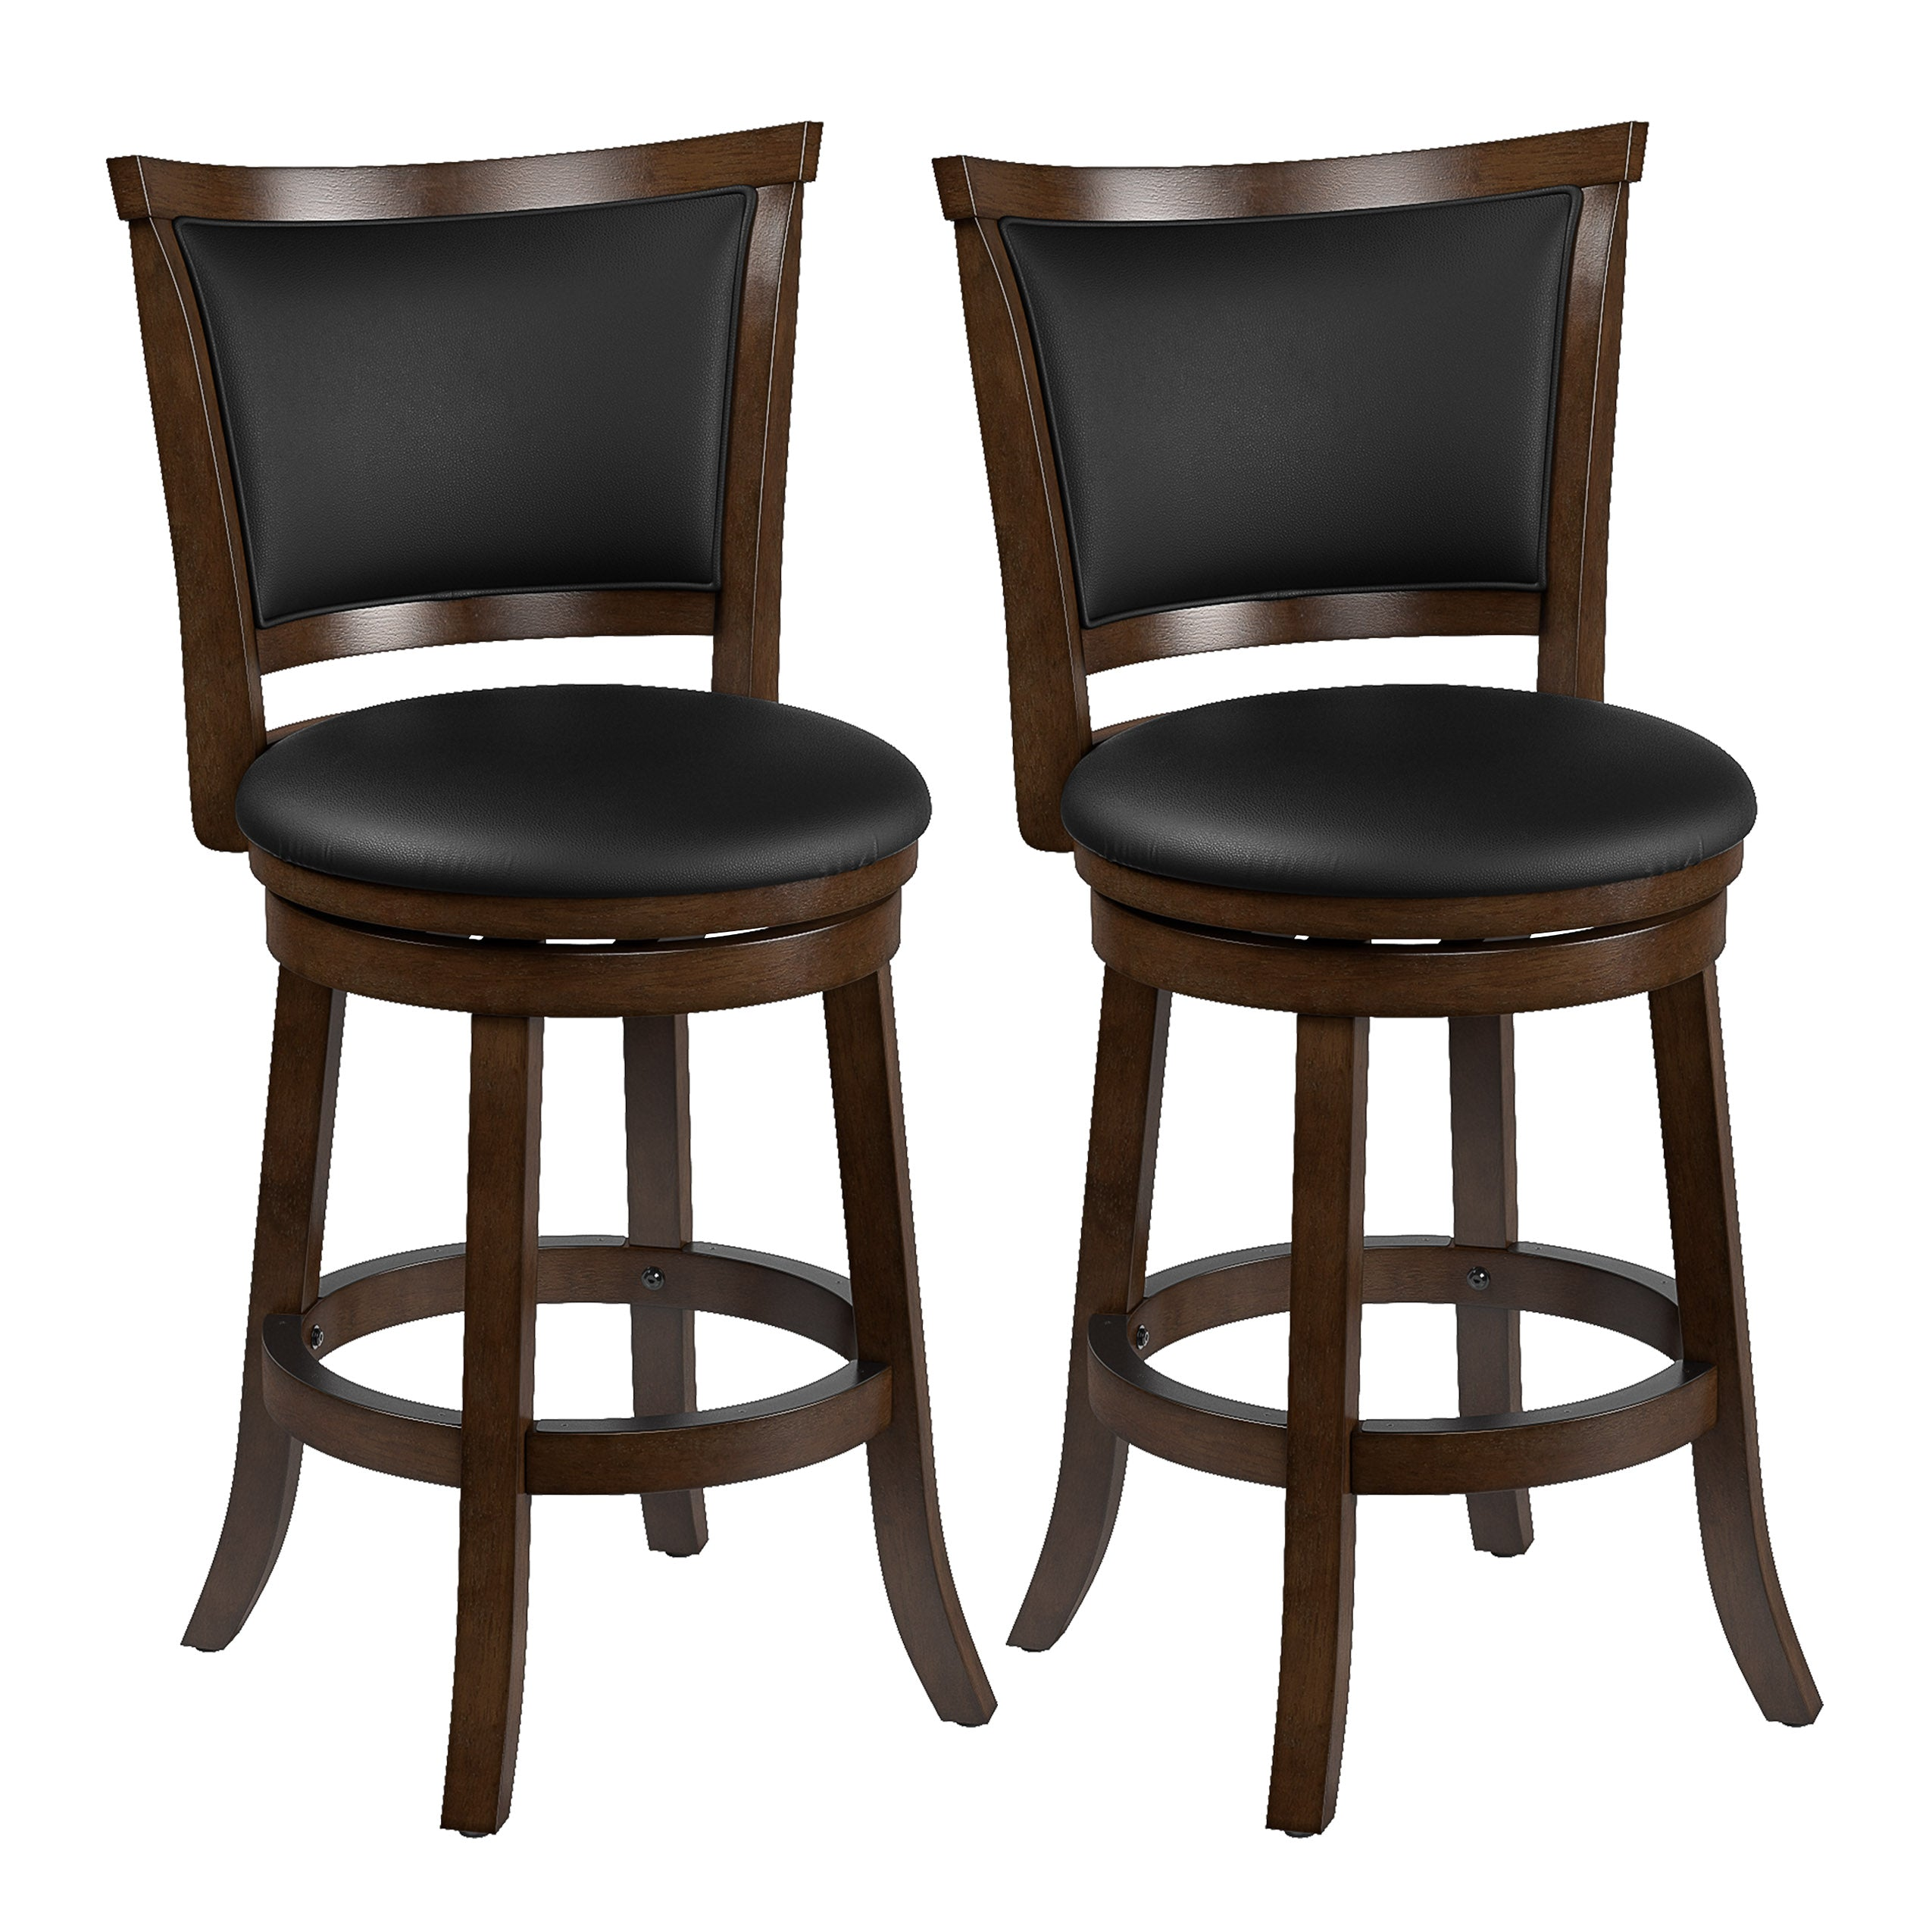 Super Counter Height Wood Bar Stools With Bonded Leather Seat And Backrest Set Of 2 Uwap Interior Chair Design Uwaporg